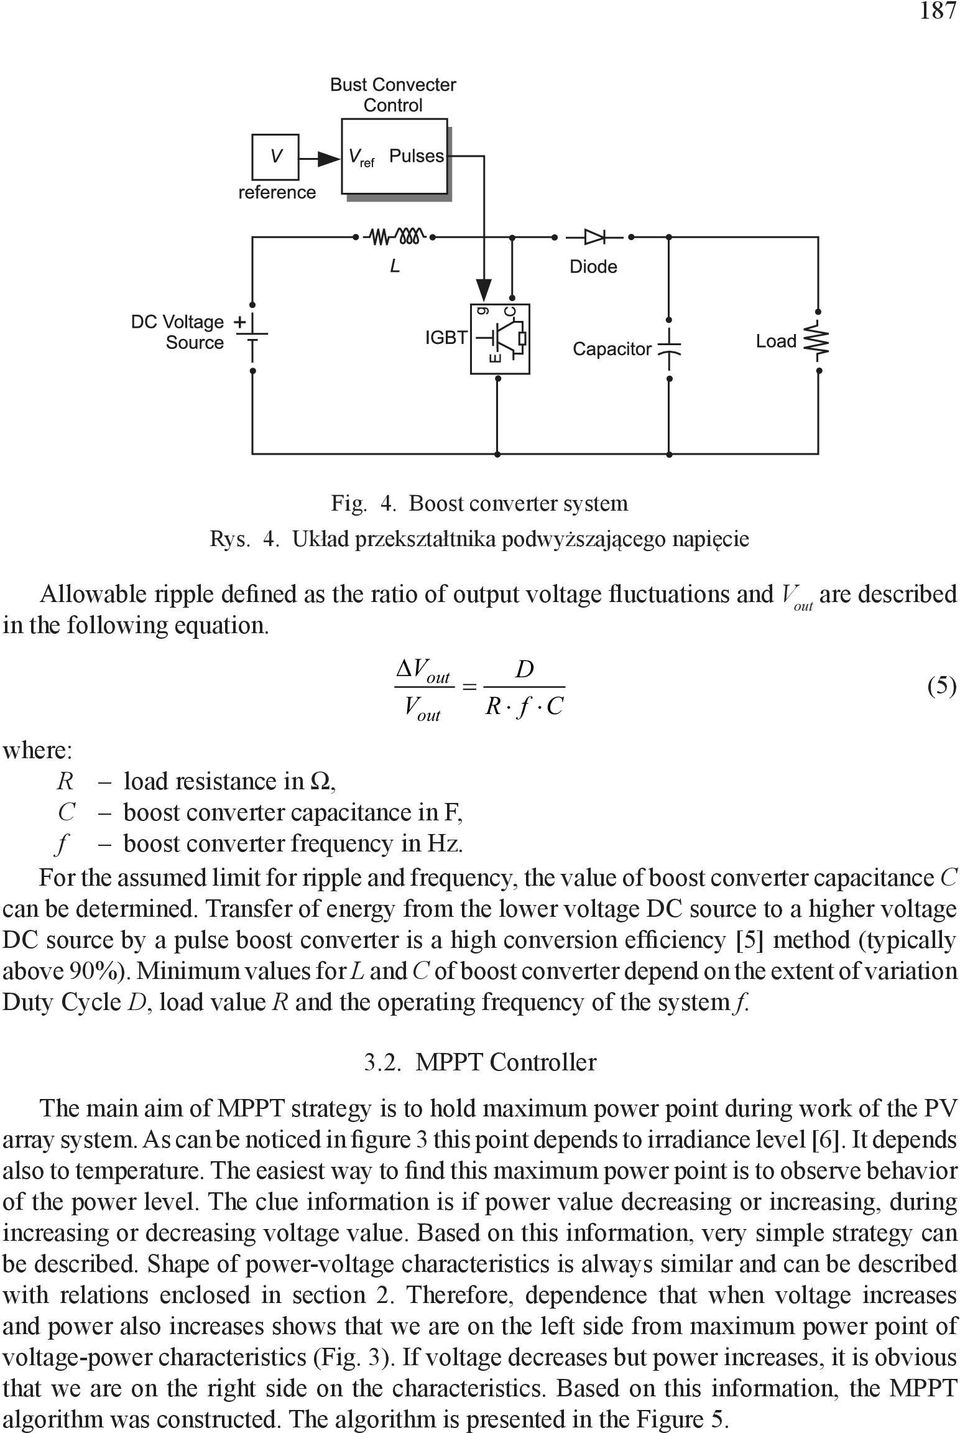 For the assumed limit for ripple and frequency, the value of boost converter capacitance C can be determined.